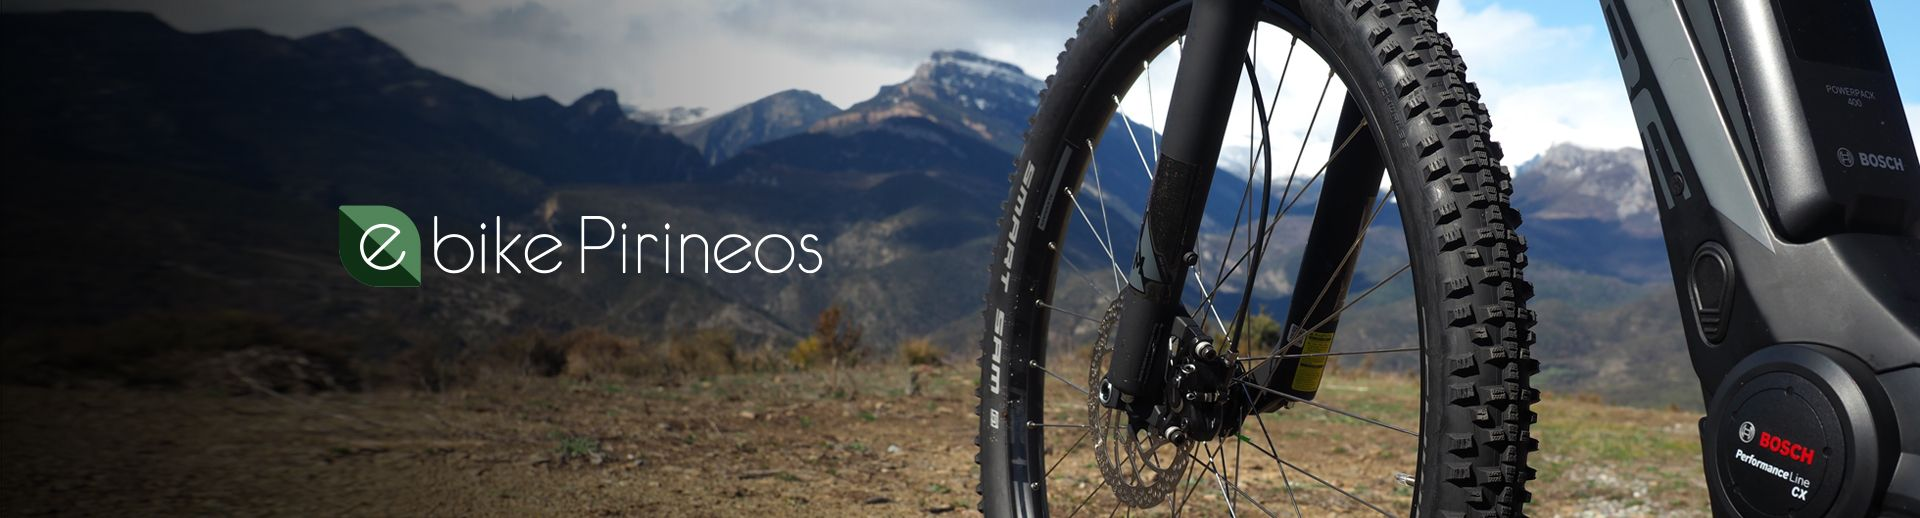 contacto e-bike pirineos